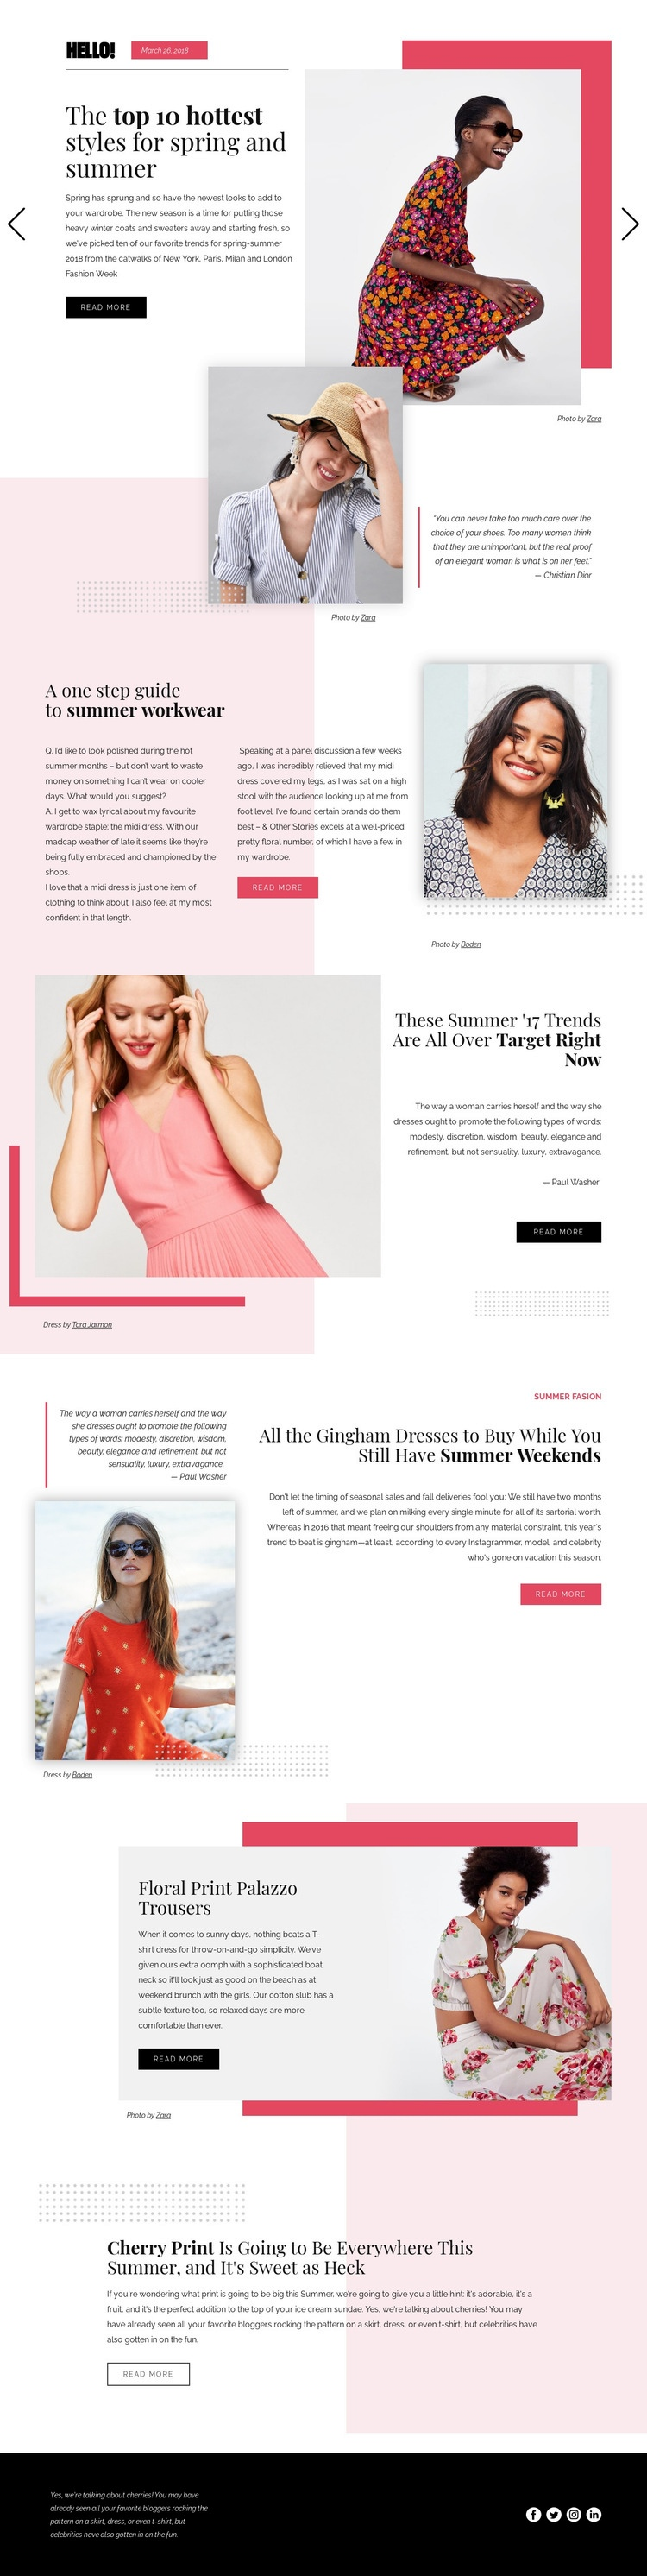 Fashion Trends Html Code Example